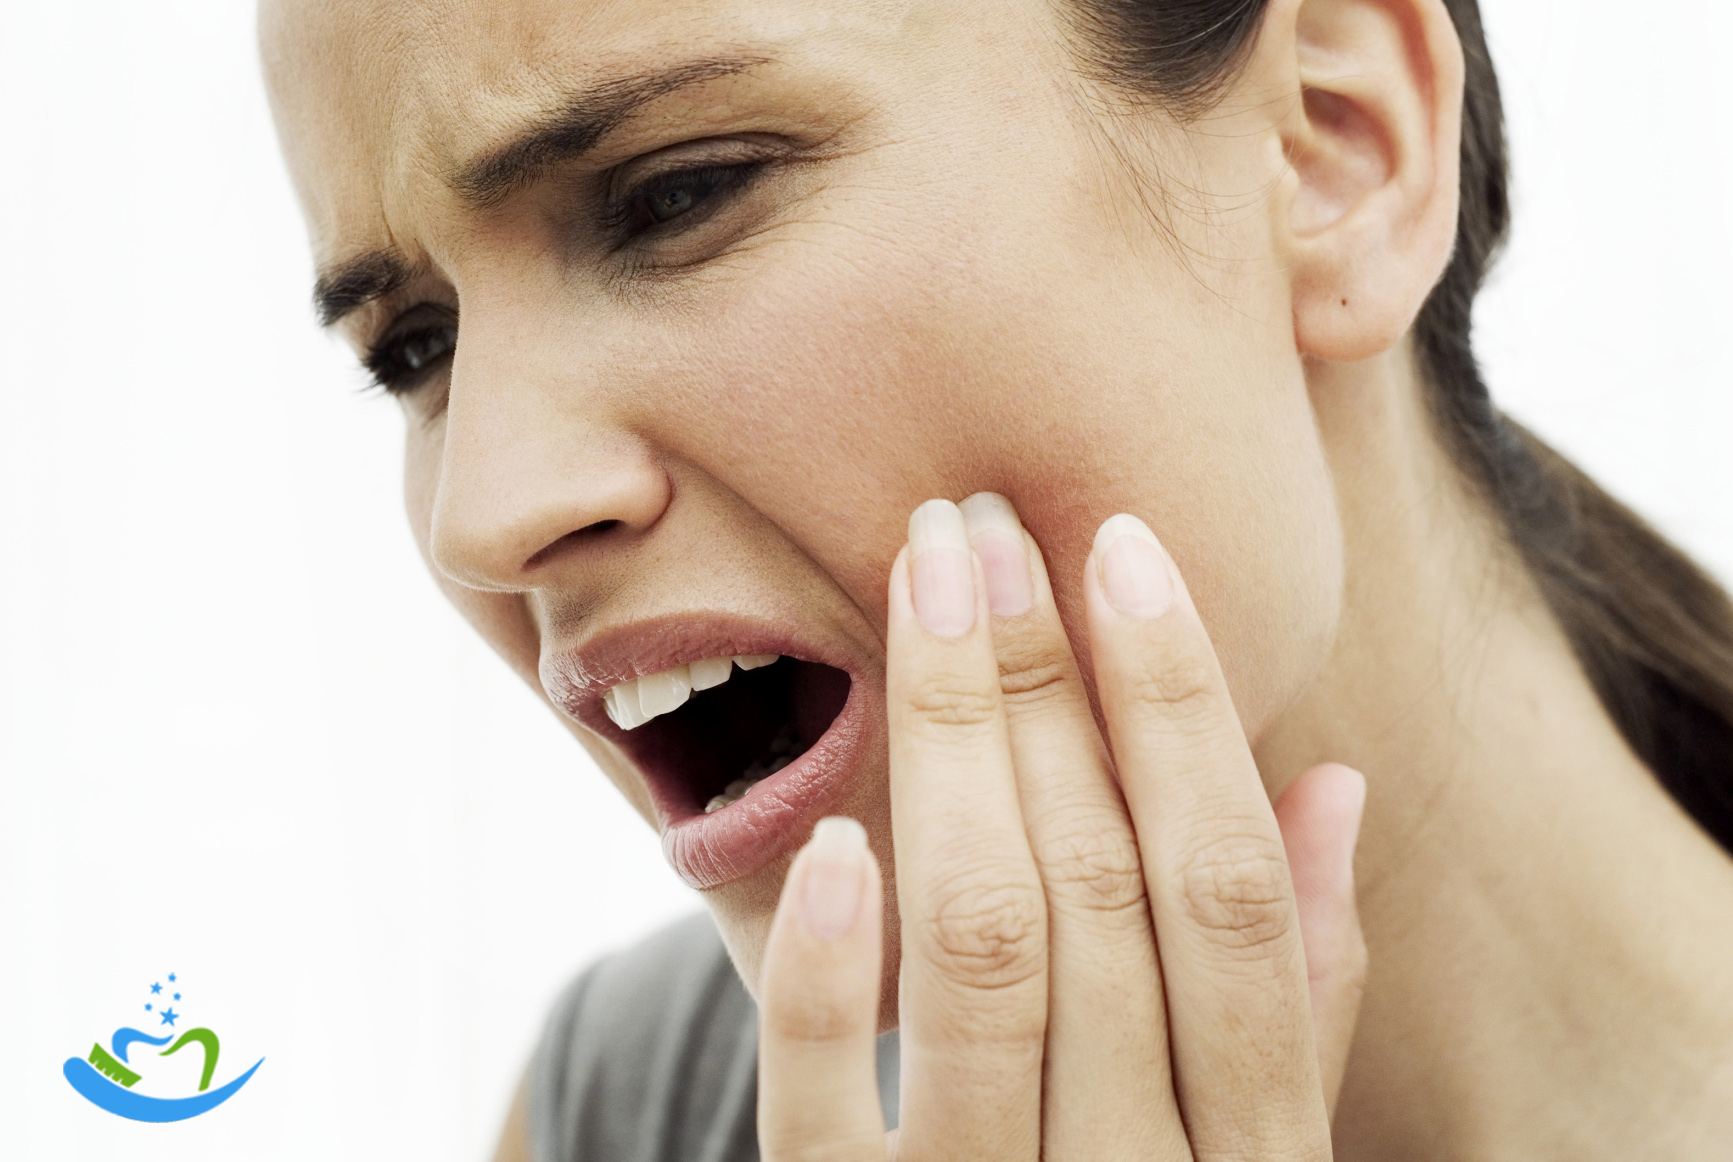 Your tooth pain may be caused from a variety of things